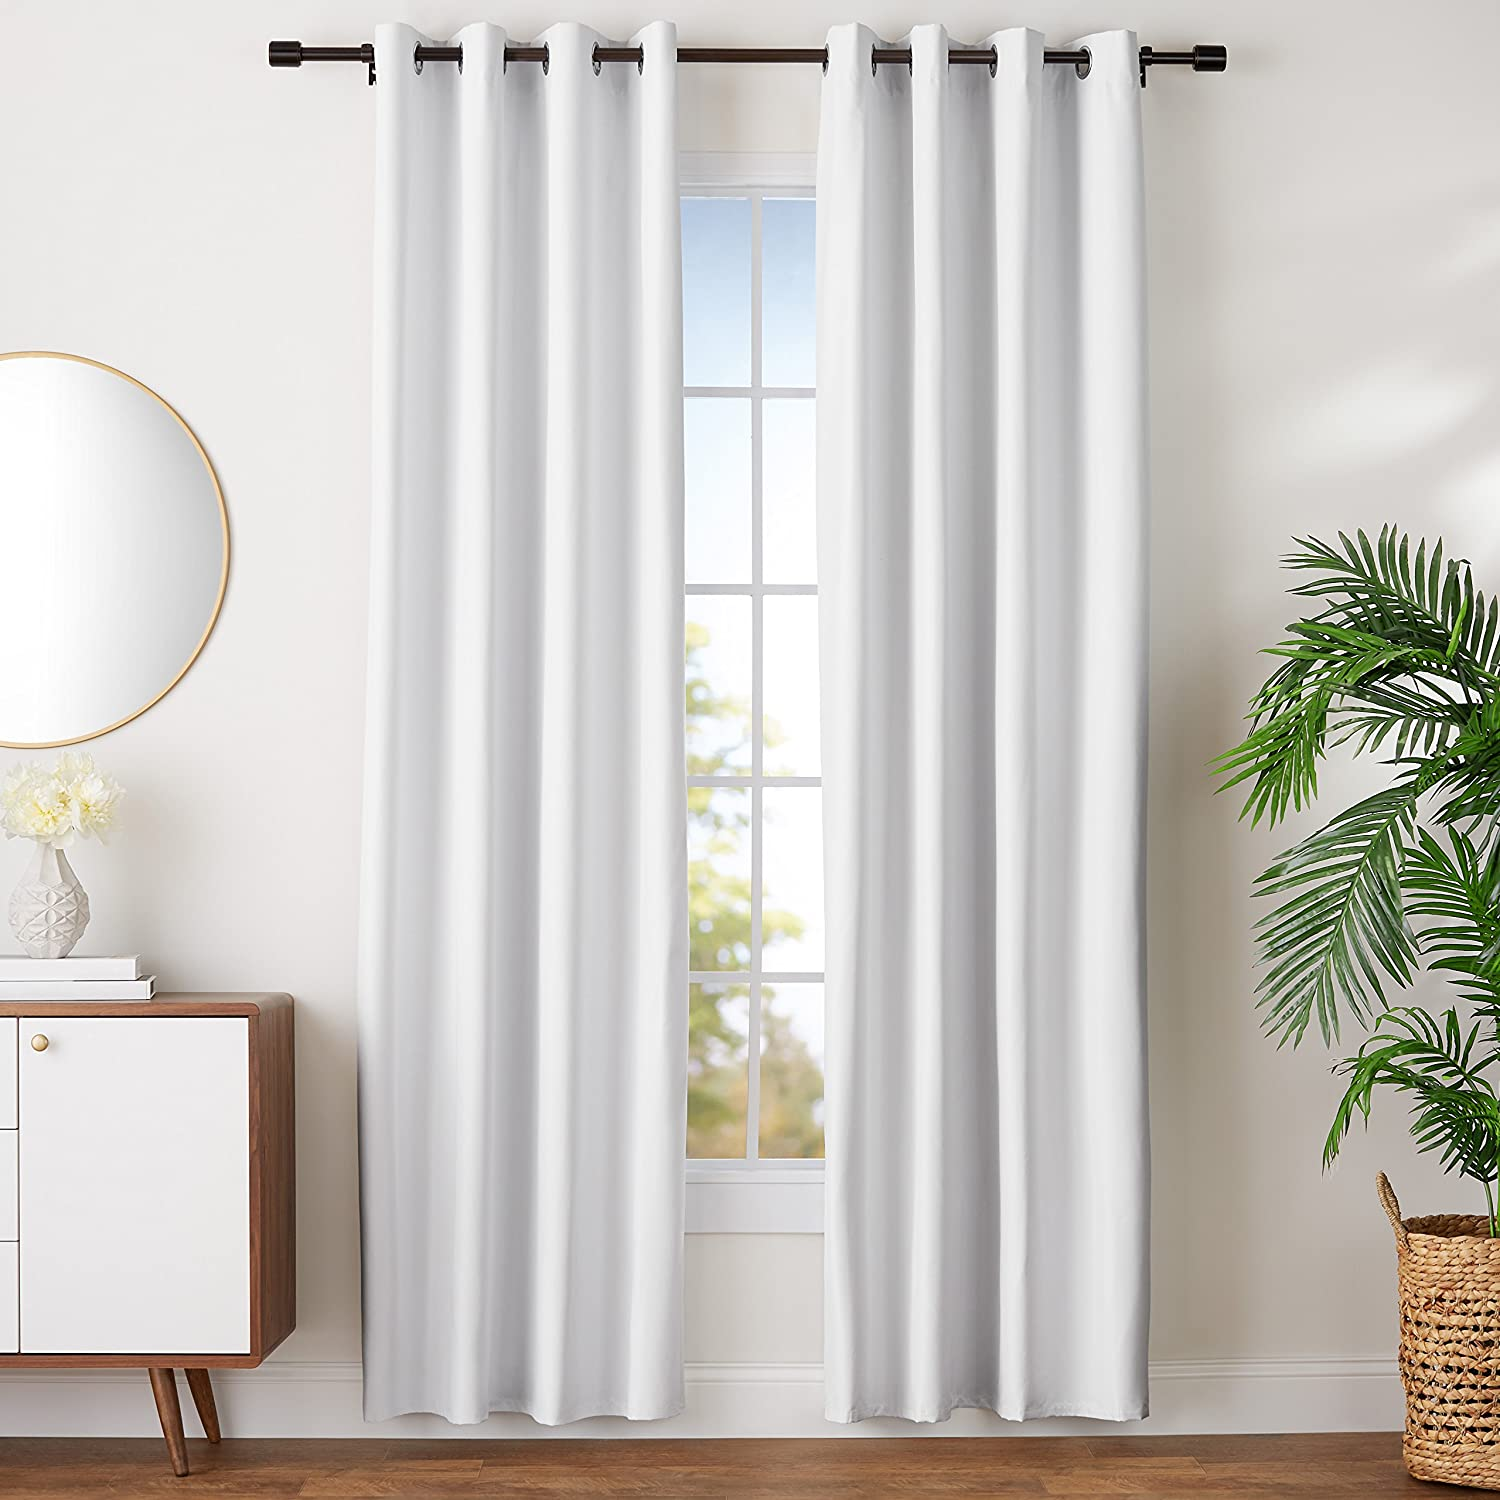 AmazonBasics Room-Darkening Blackout Curtain Set with Grommets - 42 x 63, Grey-Beige AmazoBasics TEX-1855